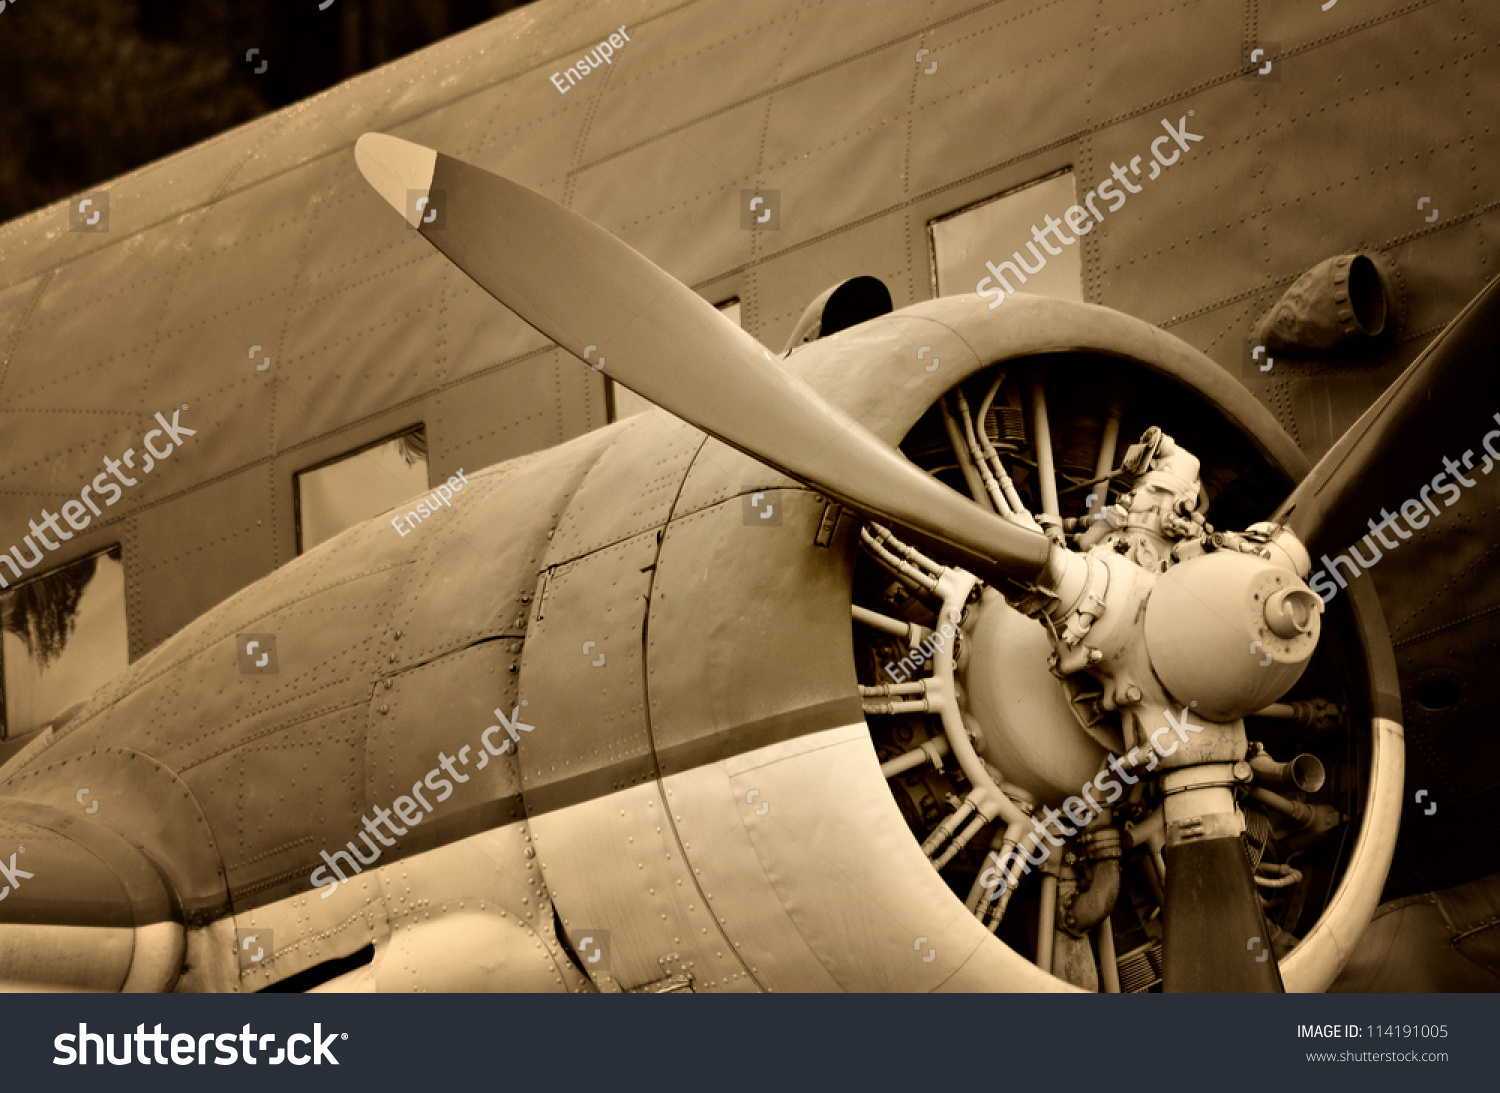 Old Aircraft Engine Vintage Plane Close Up